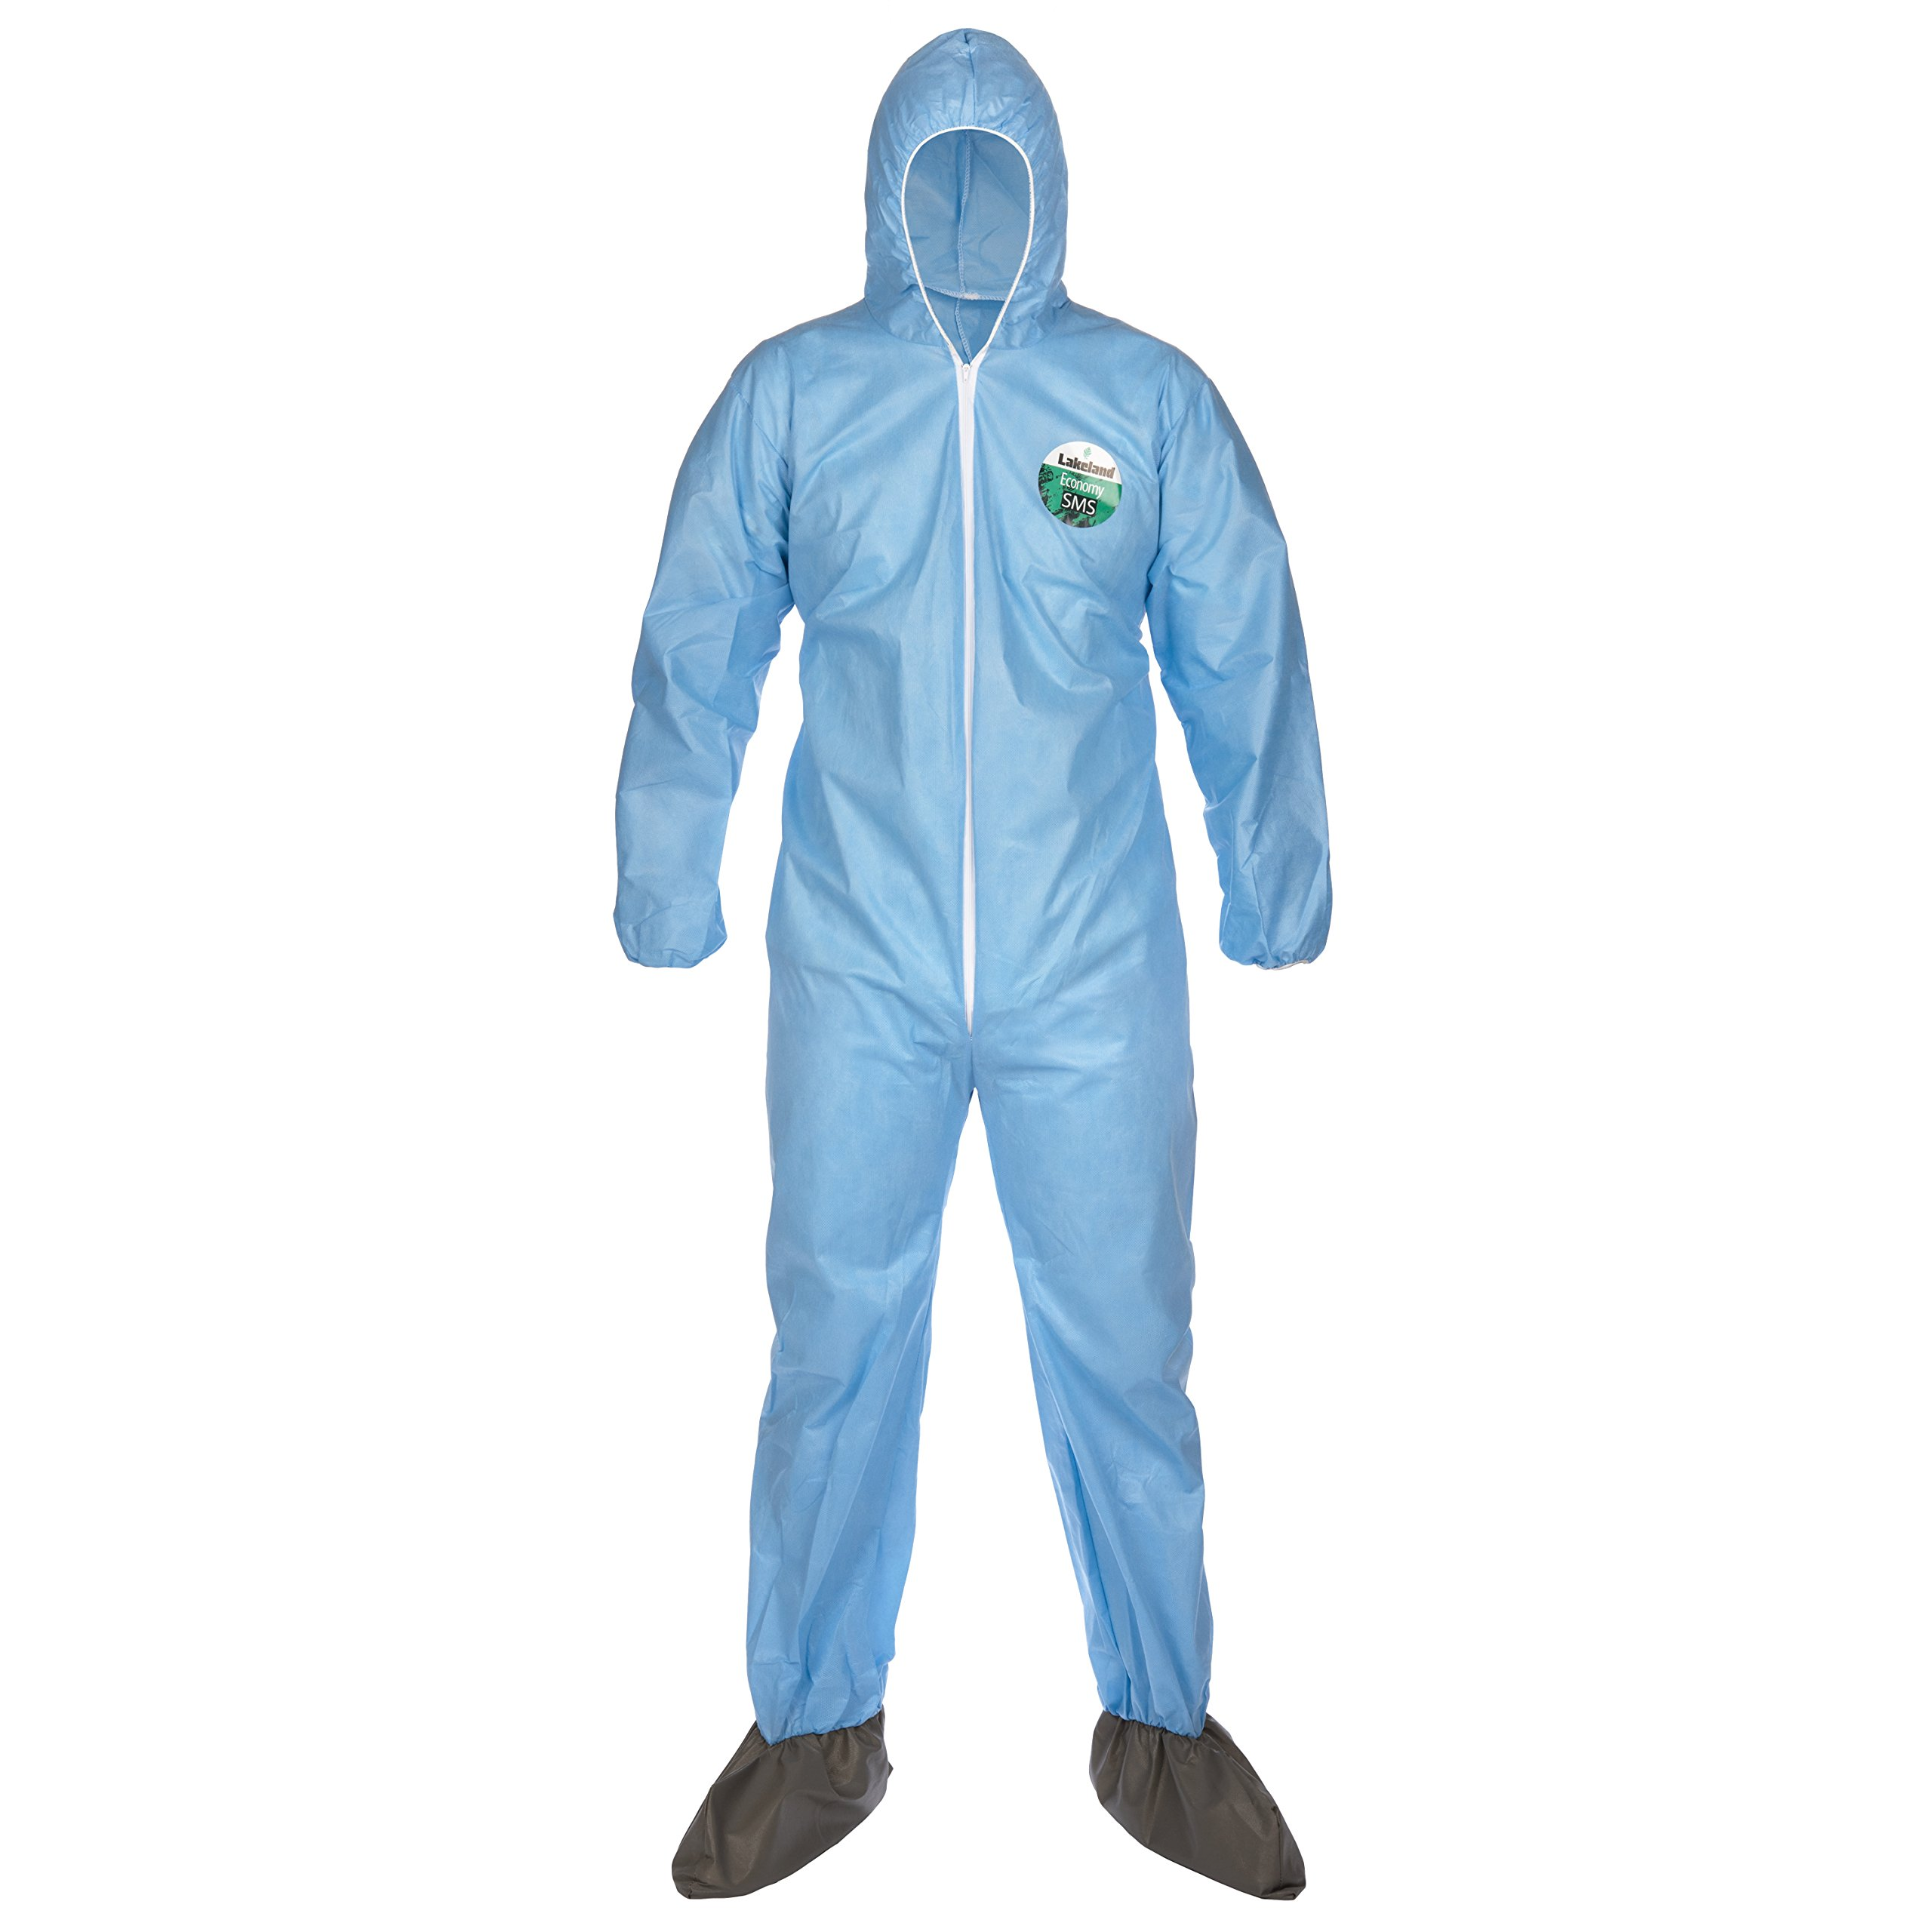 Lakeland SafeGard Economy SMS Coverall with Hood and Boots, Disposable, Elastic Cuff, 3X-Large, Blue (Case of 25)